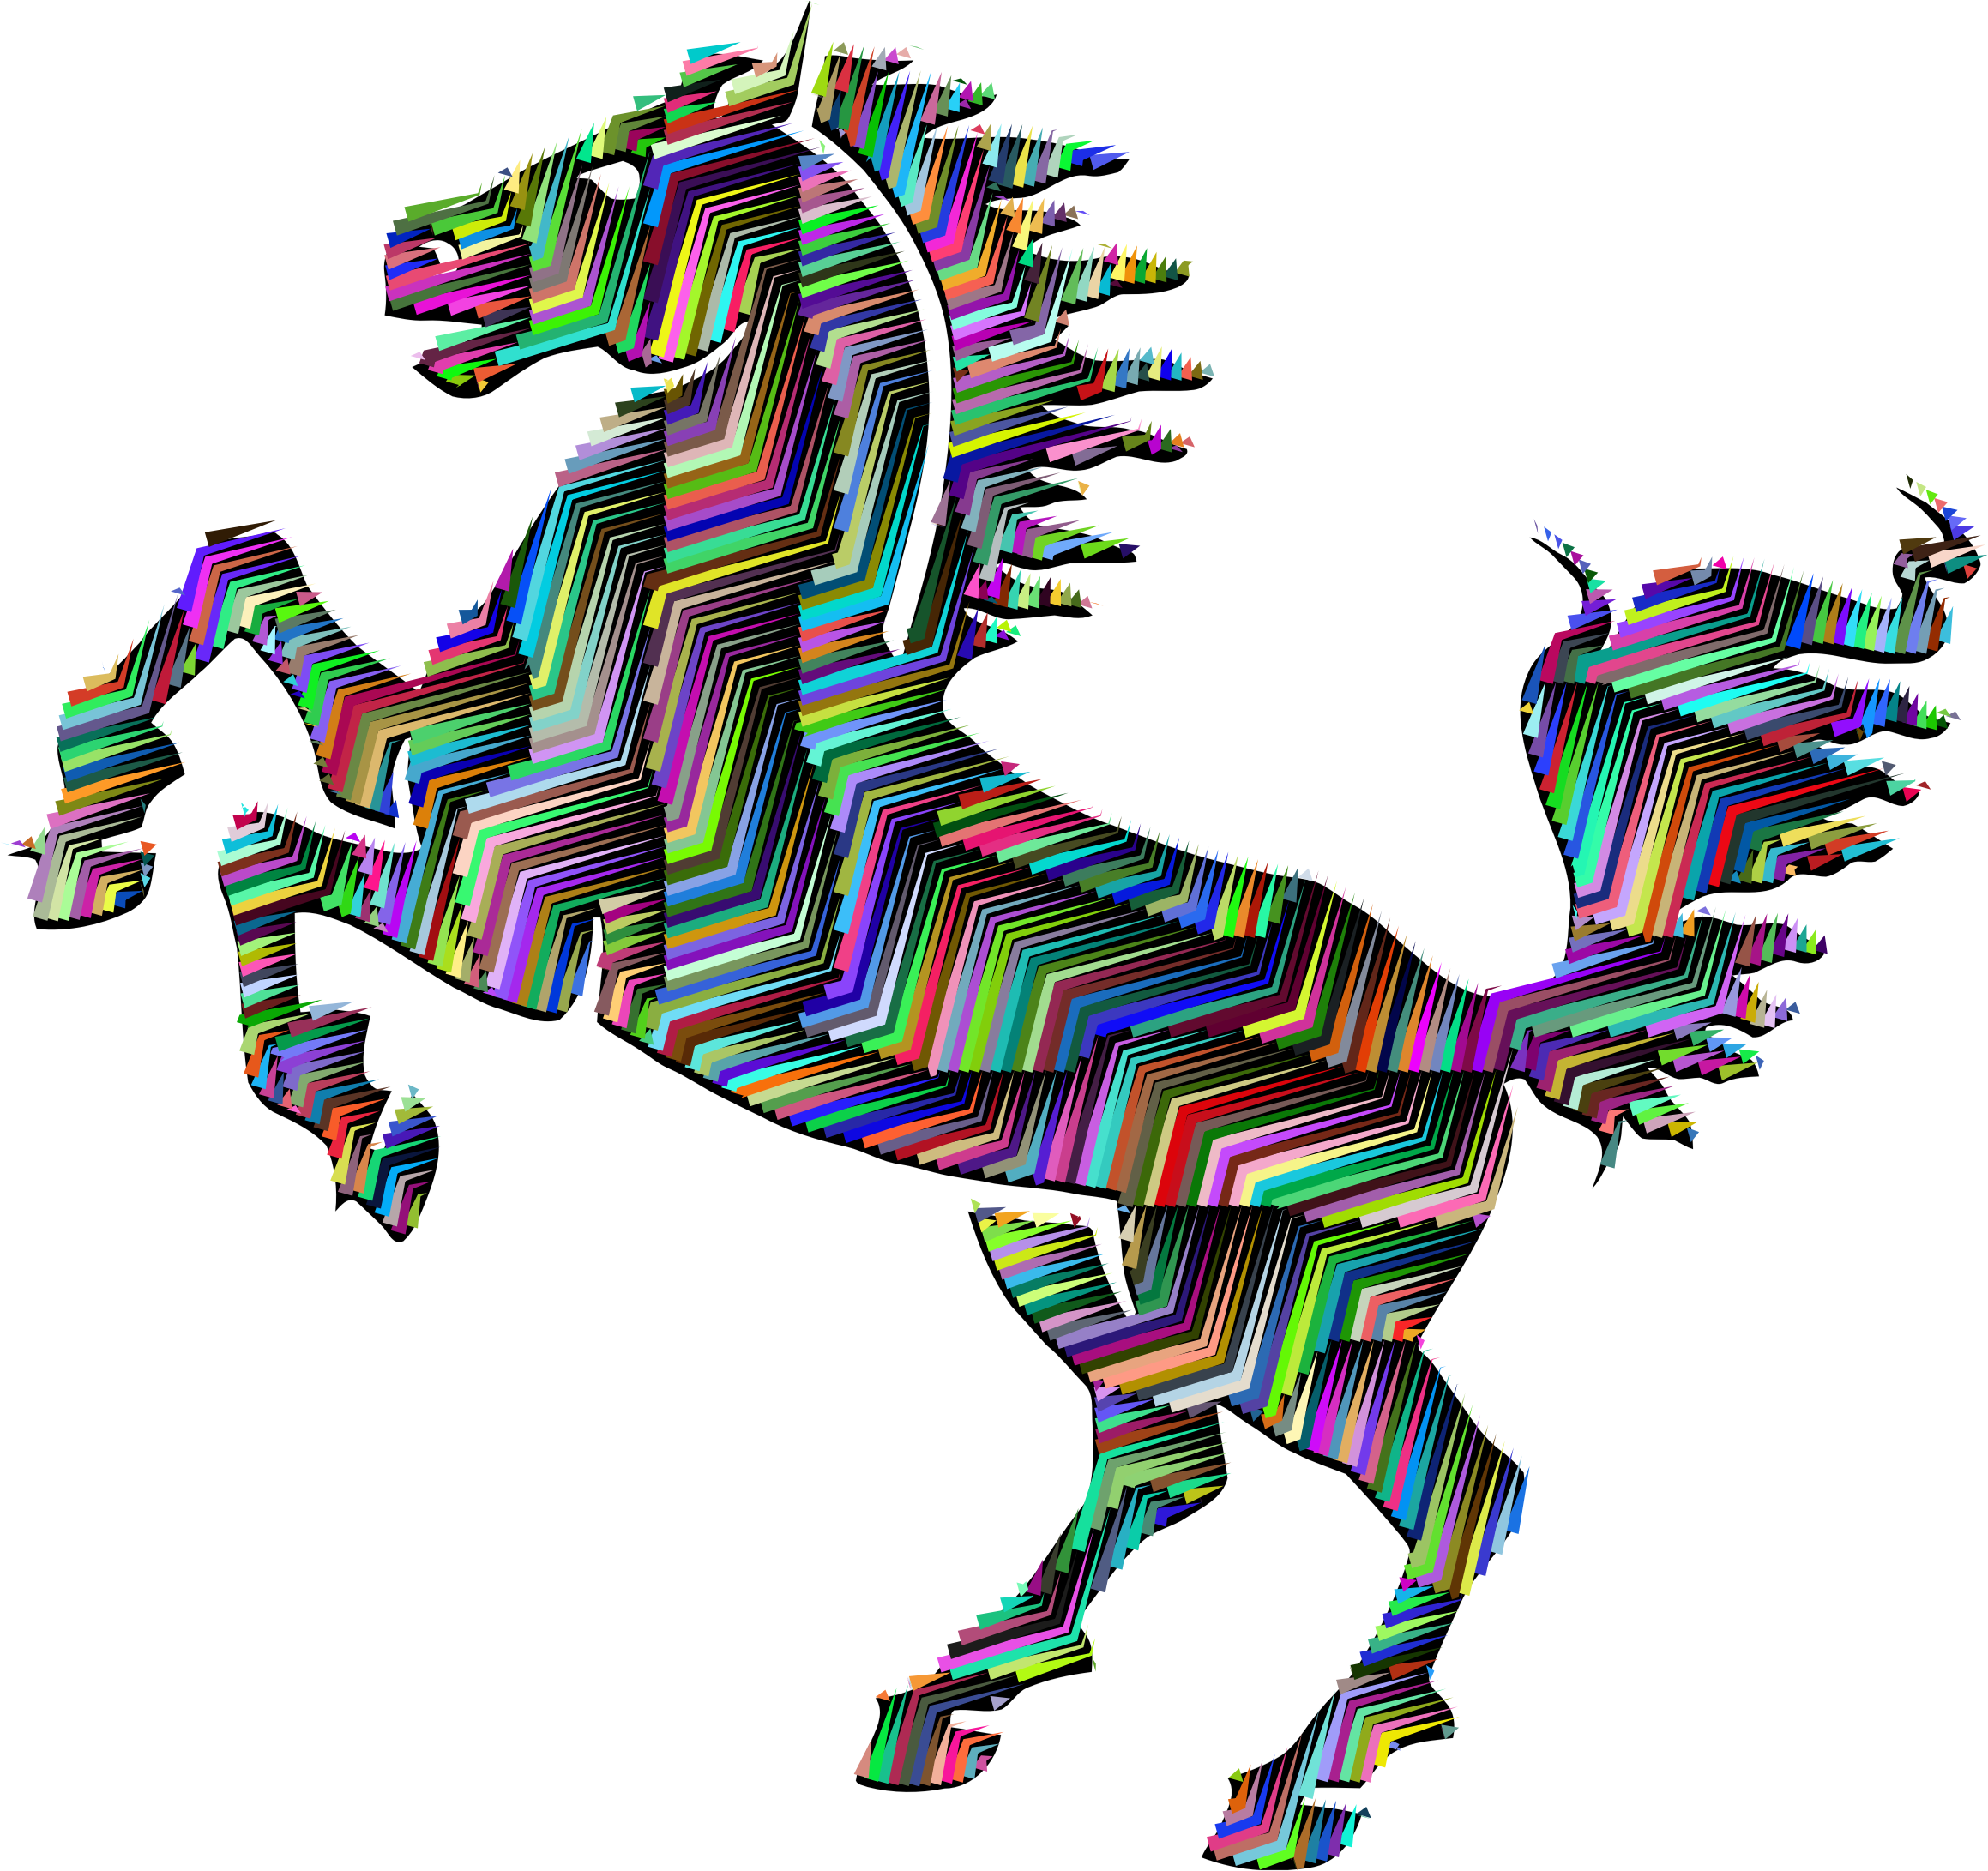 Horse clipart equine. Prismatic silhouette abstract line